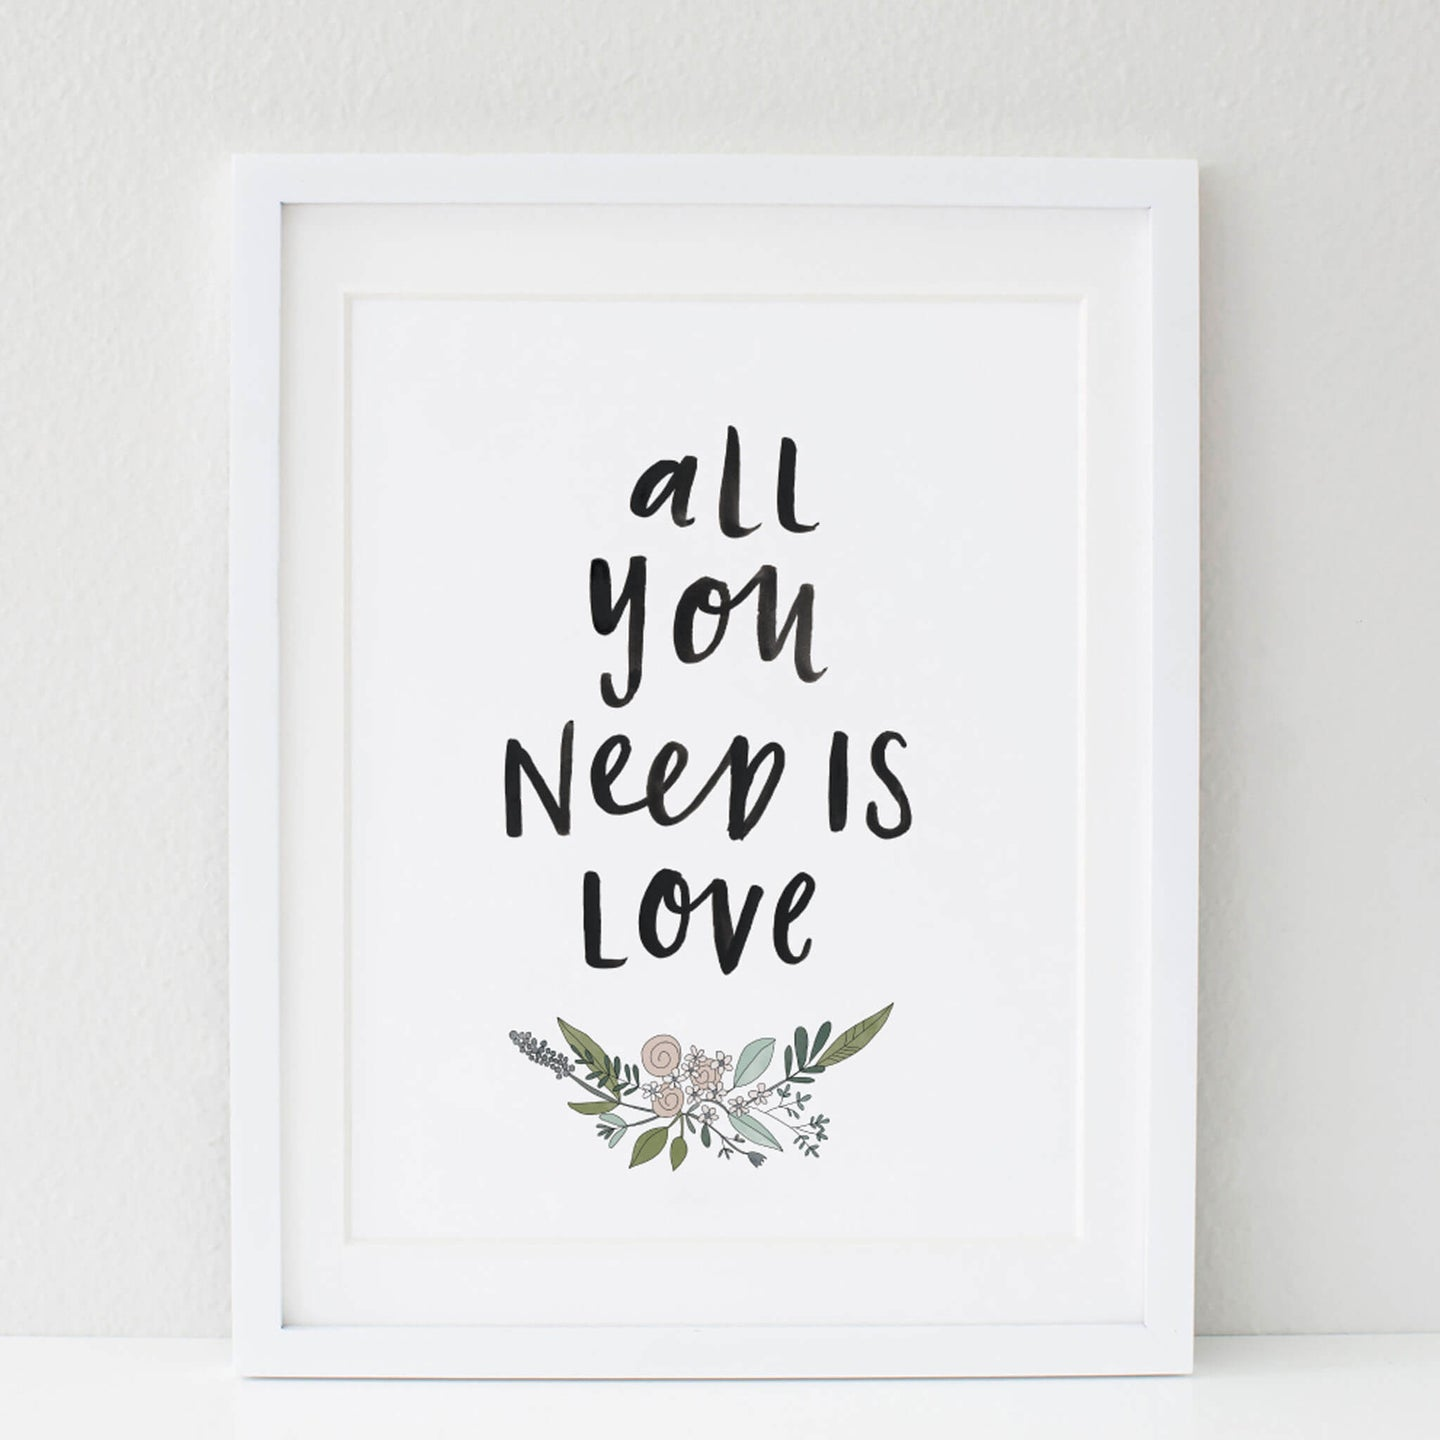 All You Need Is Love Framed Artwork